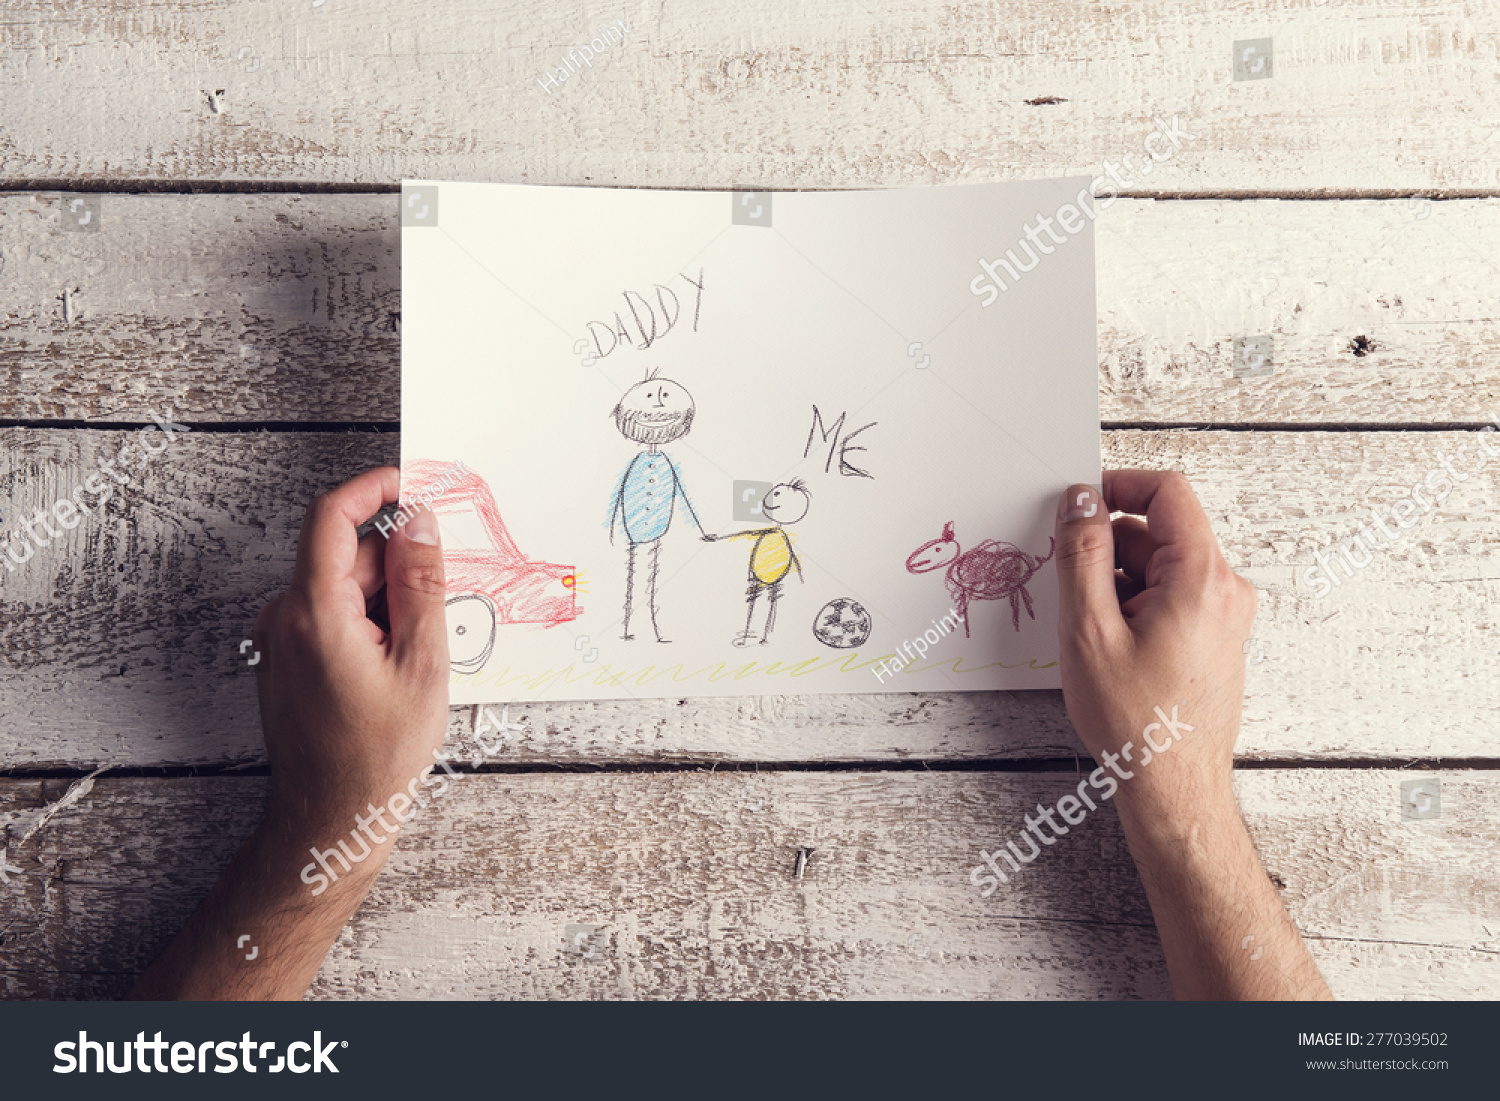 Day Composition With Childs Drawing Held By A Man Laid On Wooden Desk  1500 x 1101